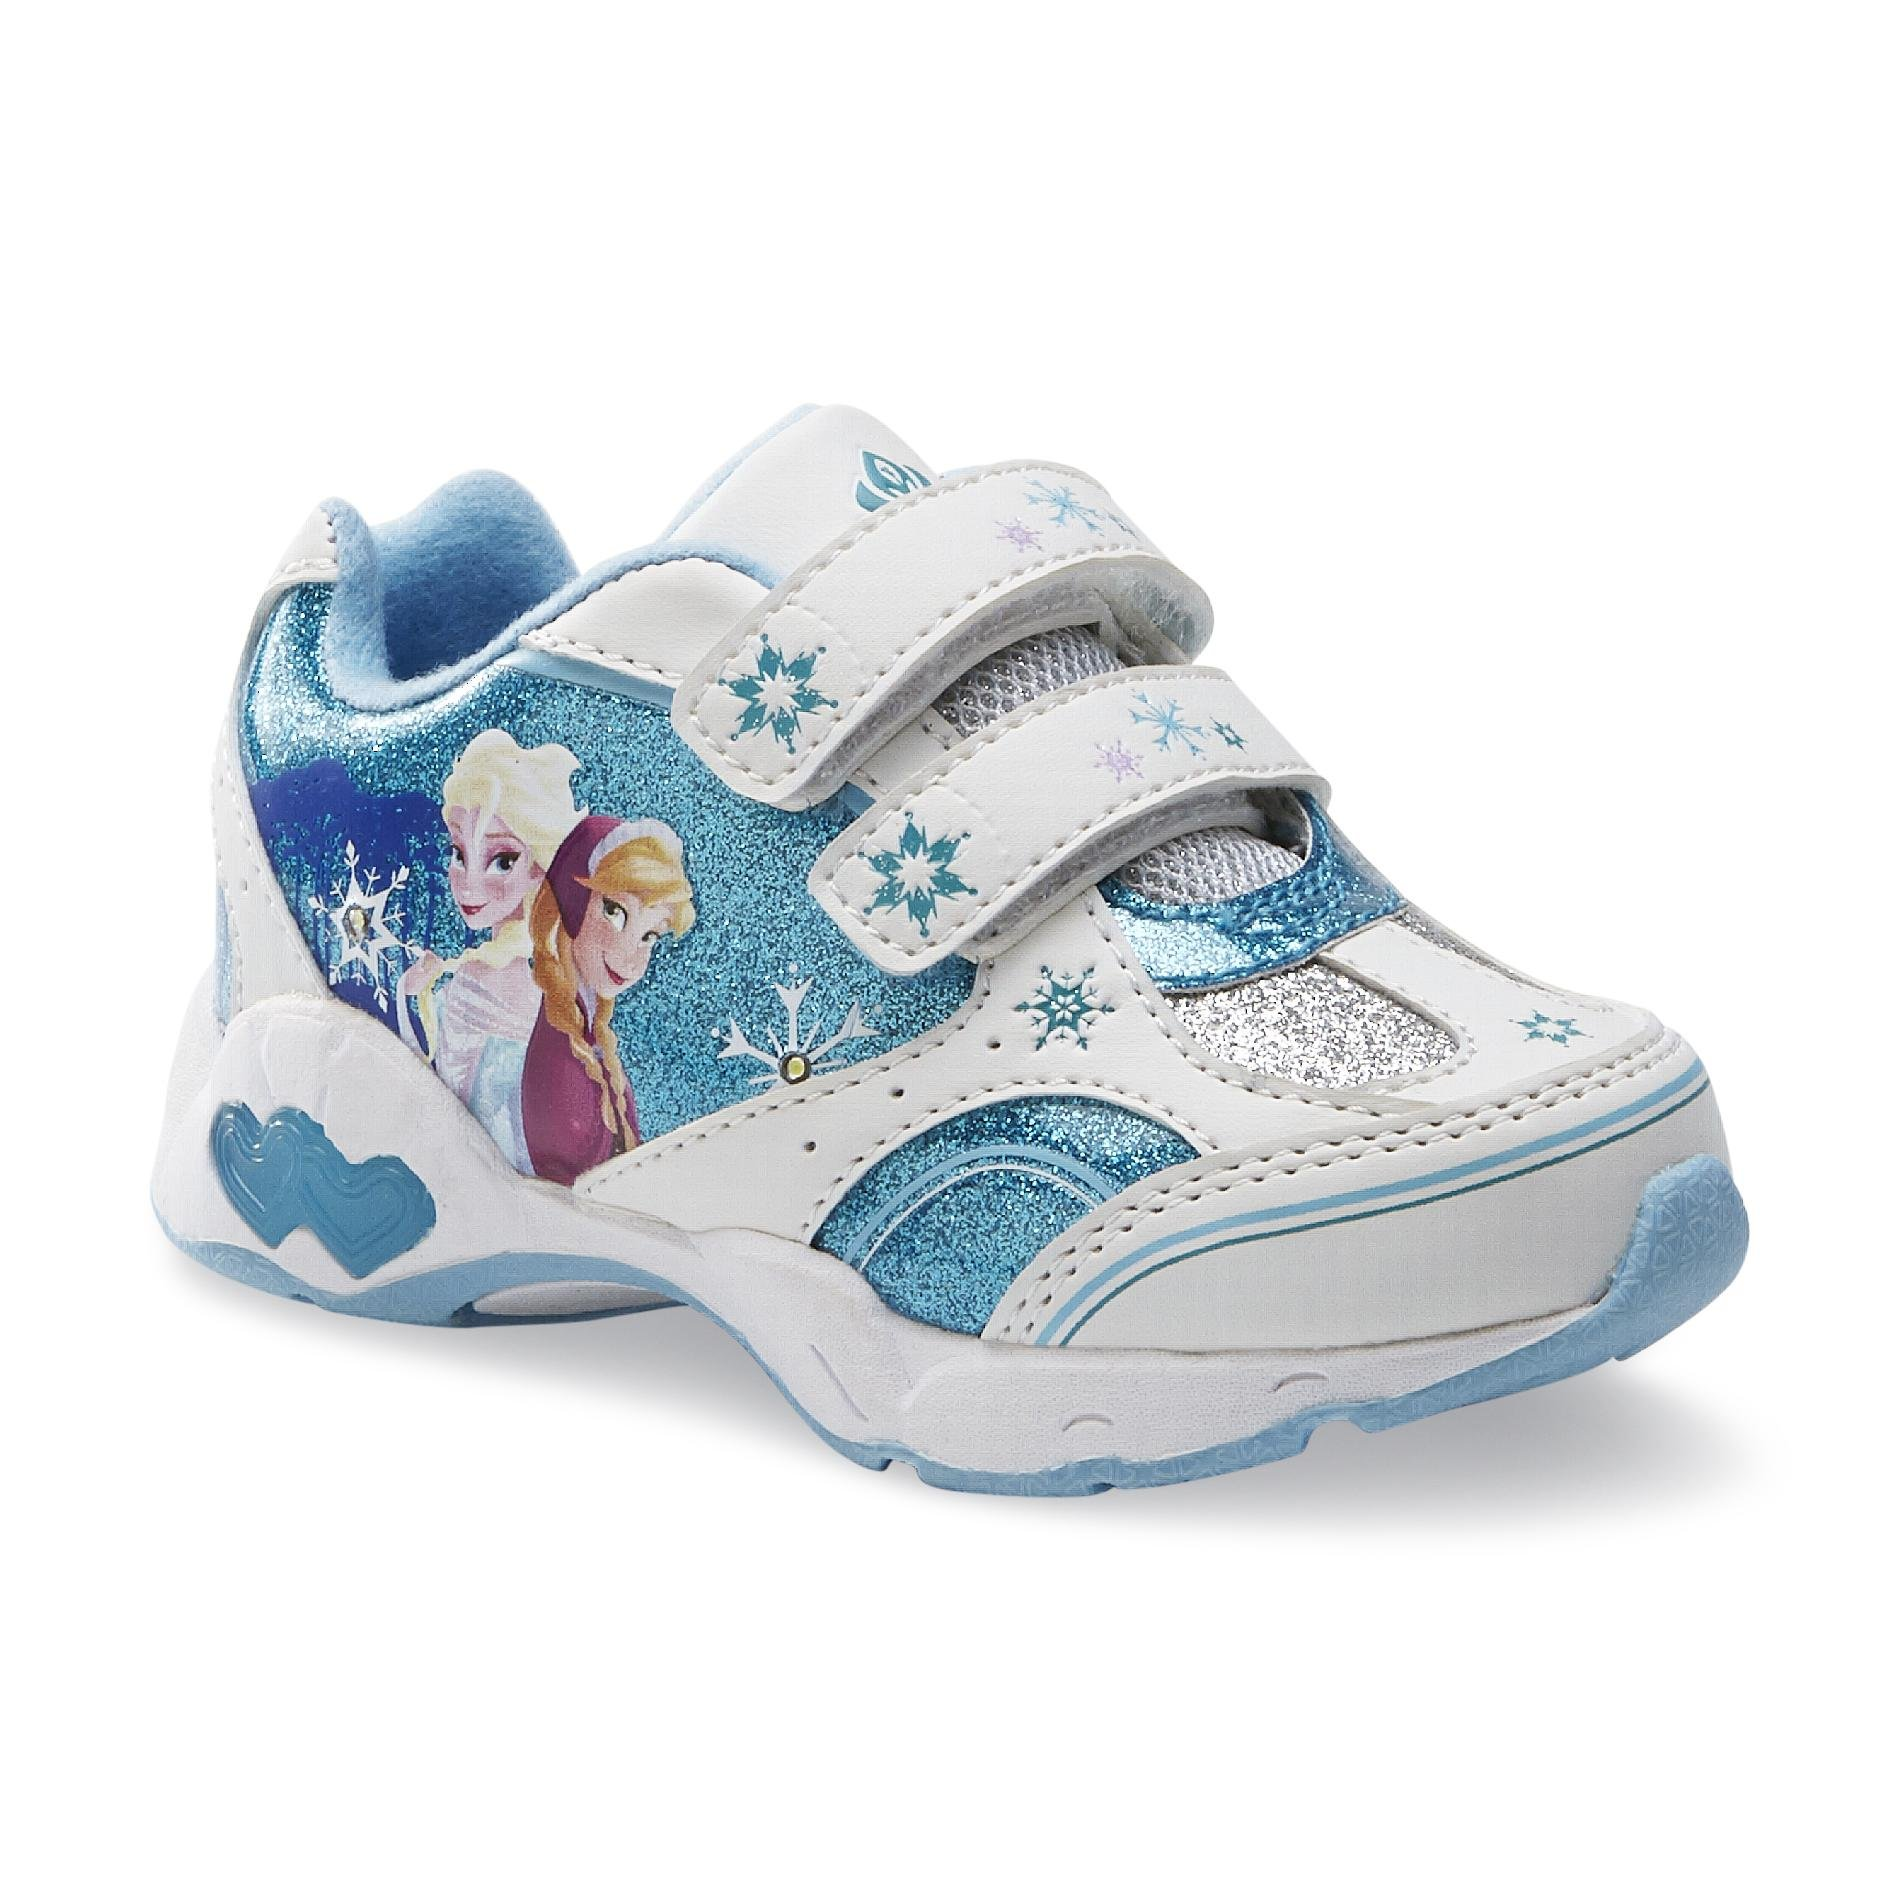 Disney Frozen Toddler Elsa Anna Sneakers Light-Up Lights Athletic Kids Shoes Blue White